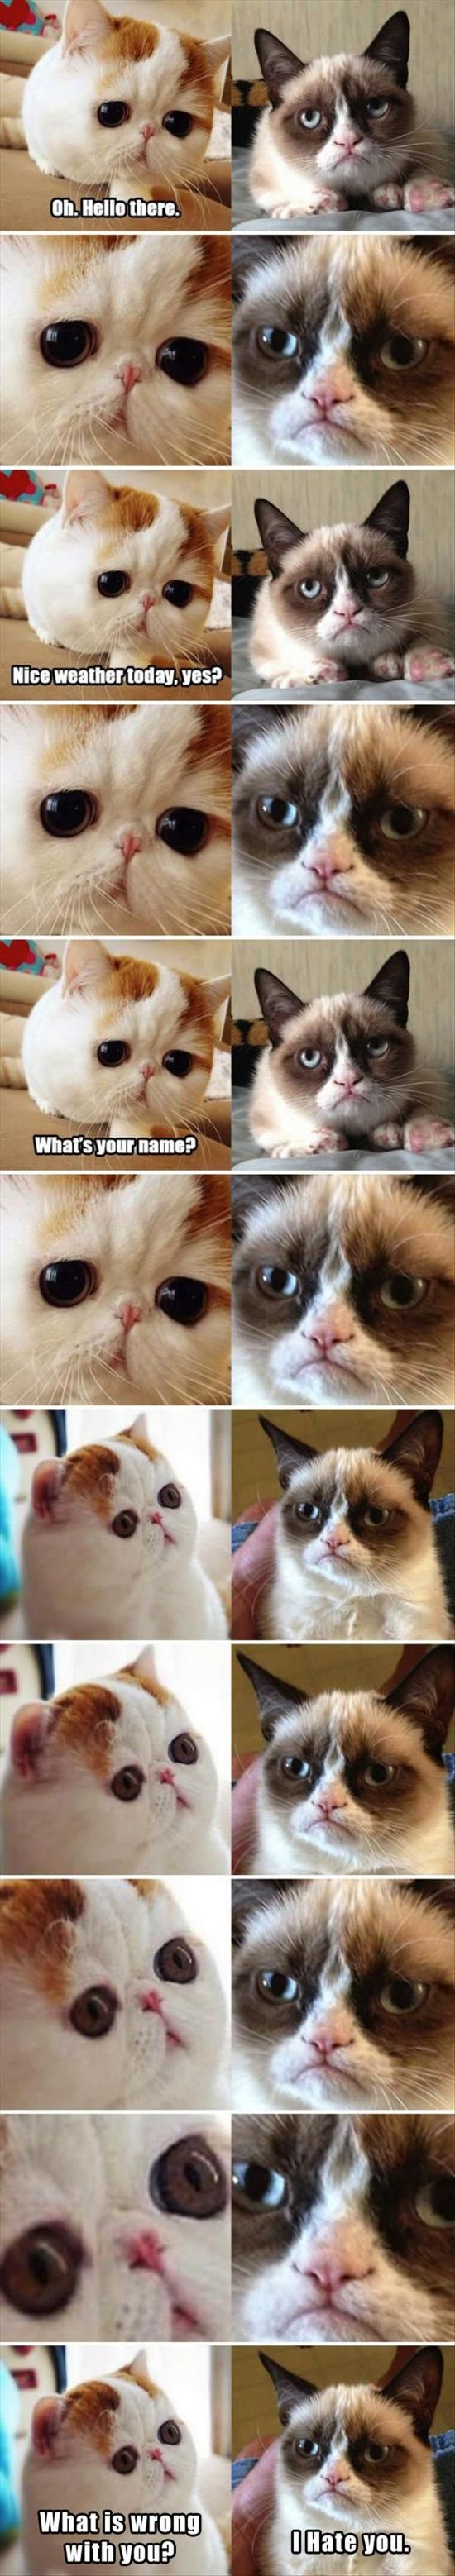 I'm the grumpy cat in the morning